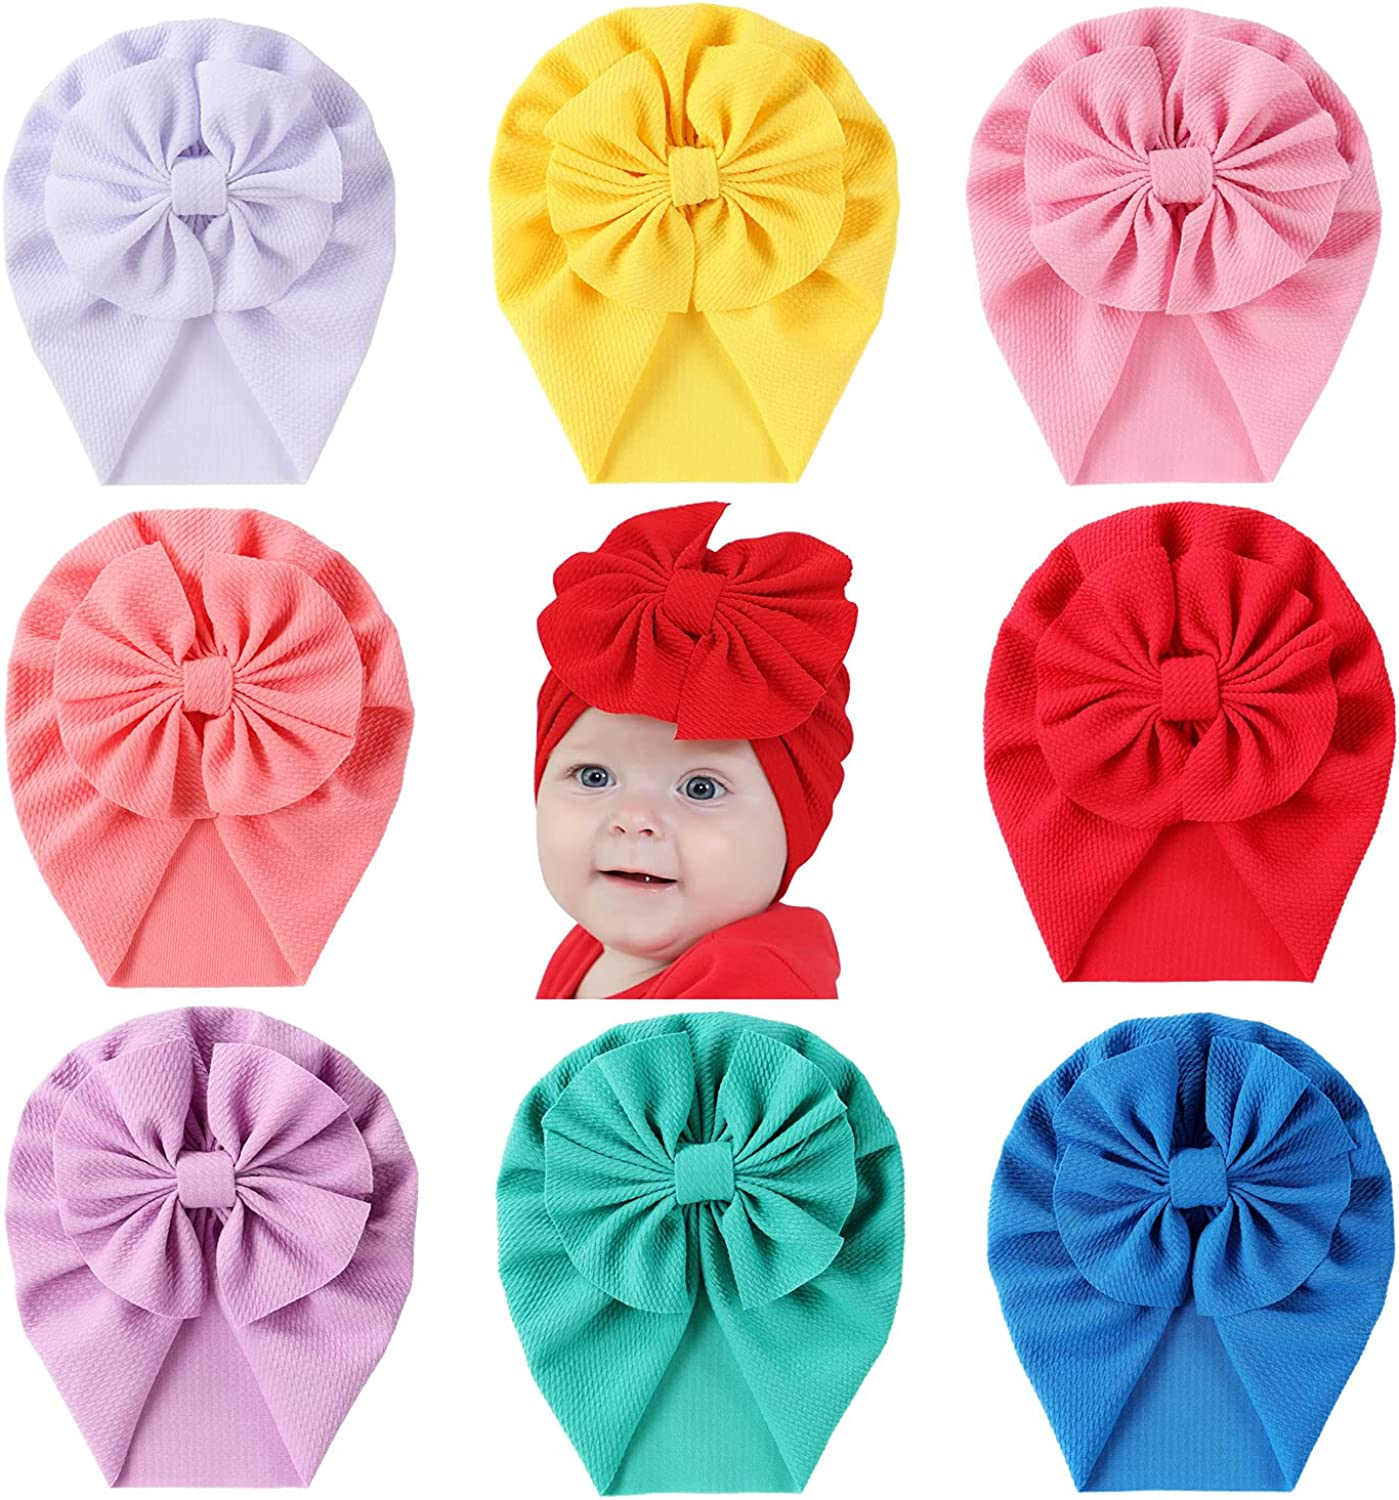 Cinaci 8 Pack Solid Knotted Bowknot Big Turban Hair Bow Beanie H Bargain Max 56% OFF